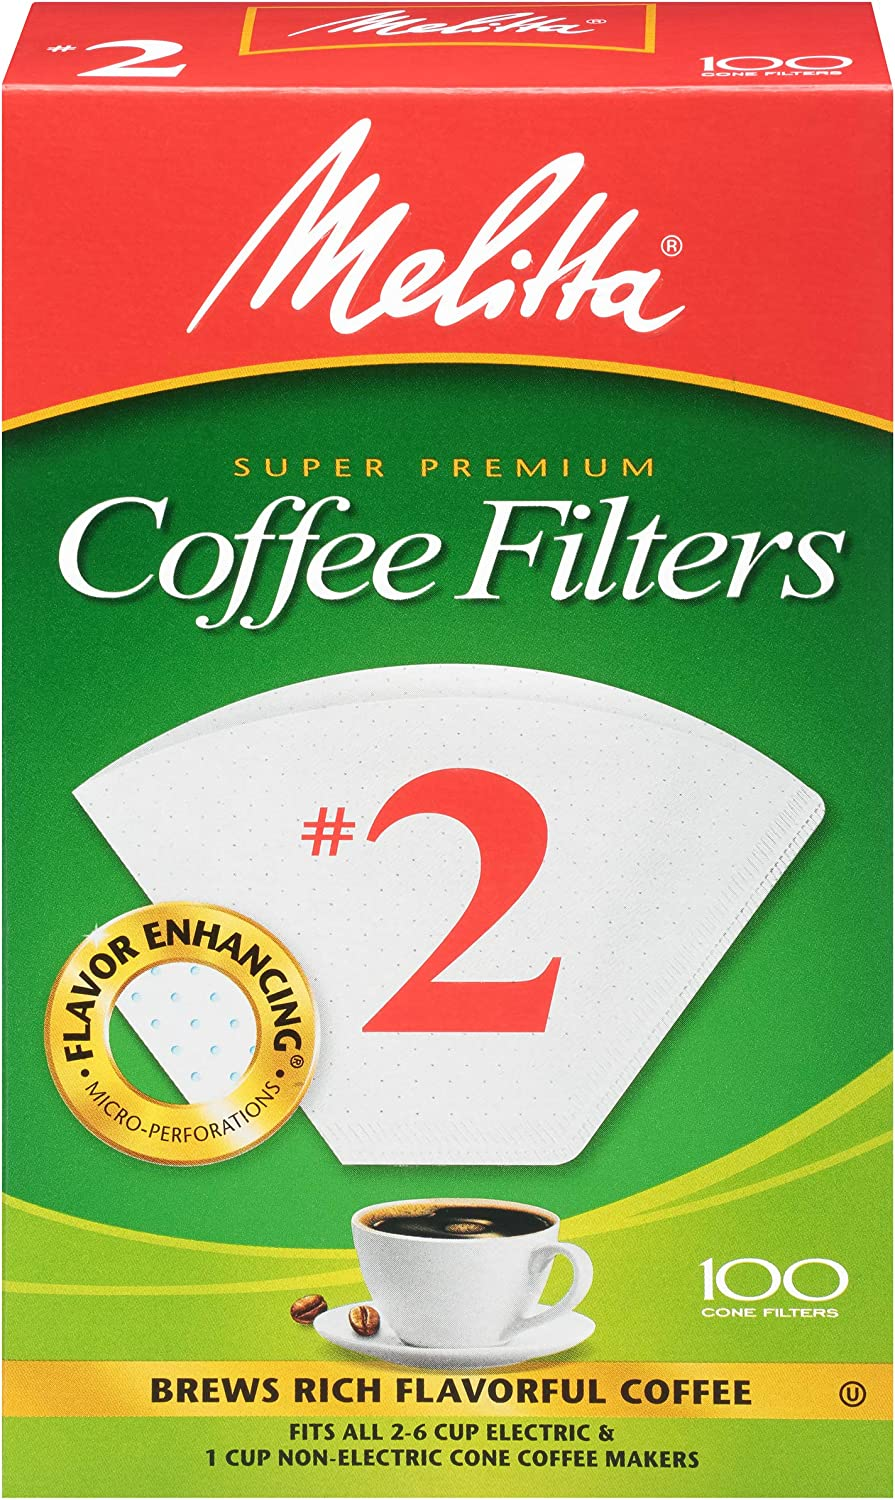 Melitta #2 Super Premium Cone Today's only Filters White outlet Count 100 Coffee